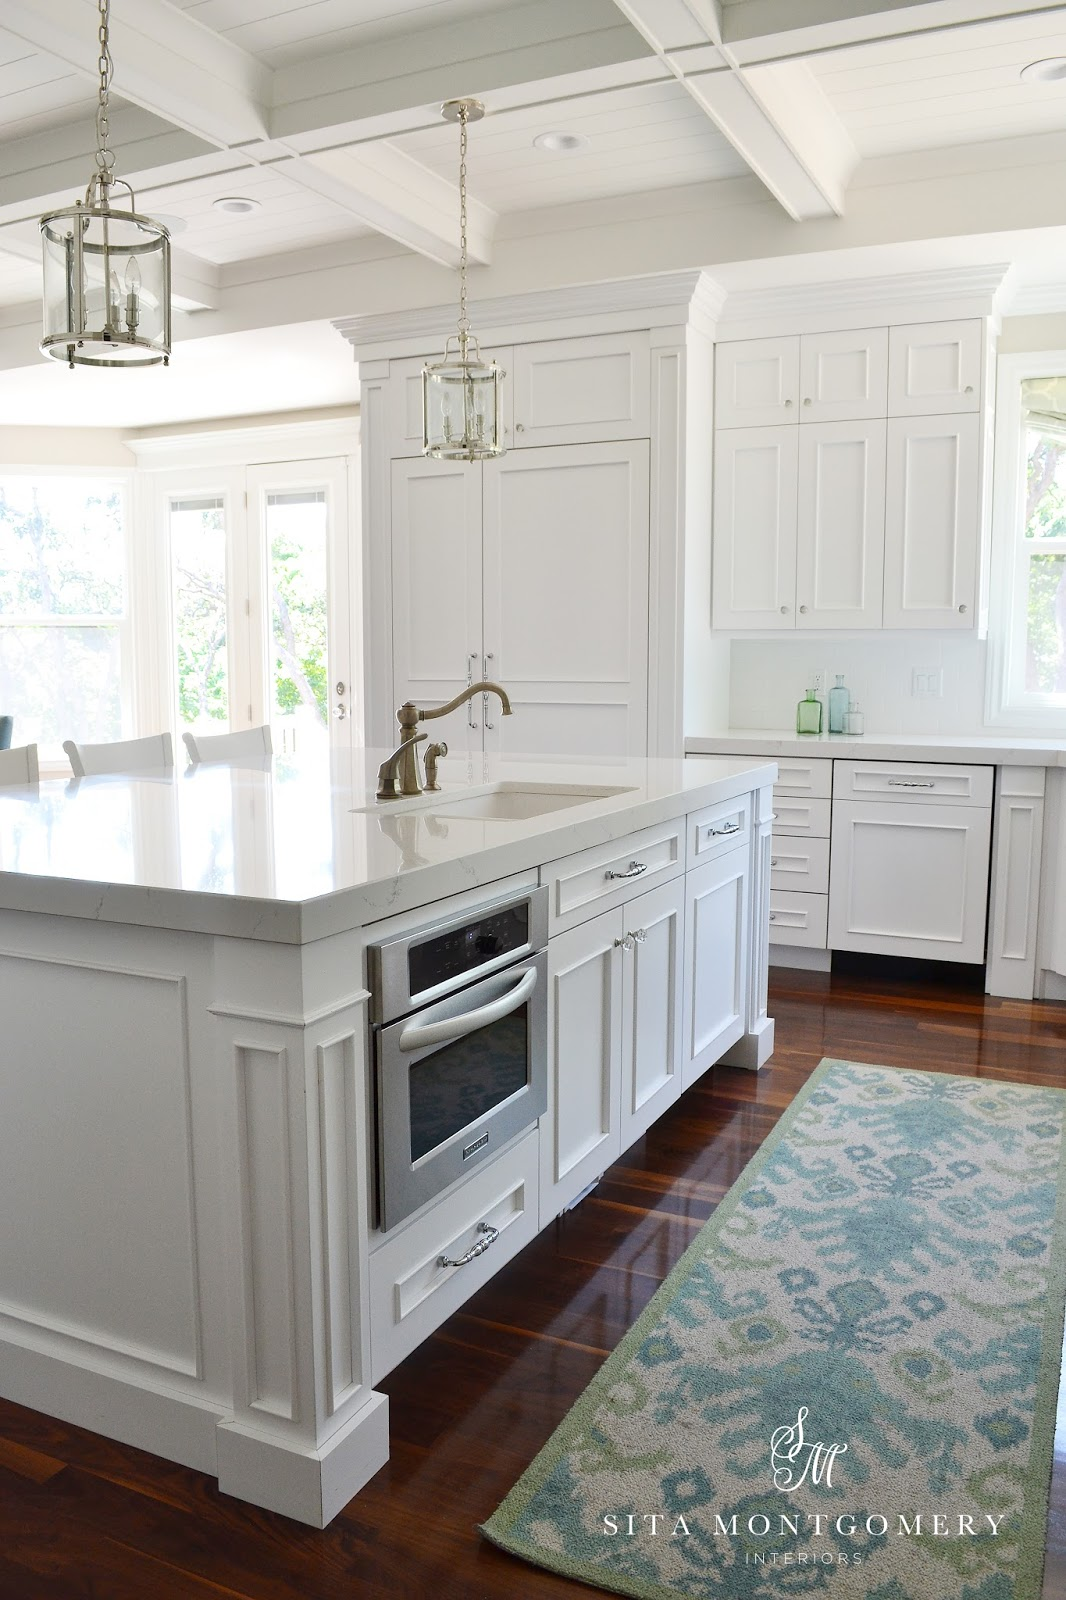 Sita Montgomery Interiors Client Project Reveal: The Rigby Project ...